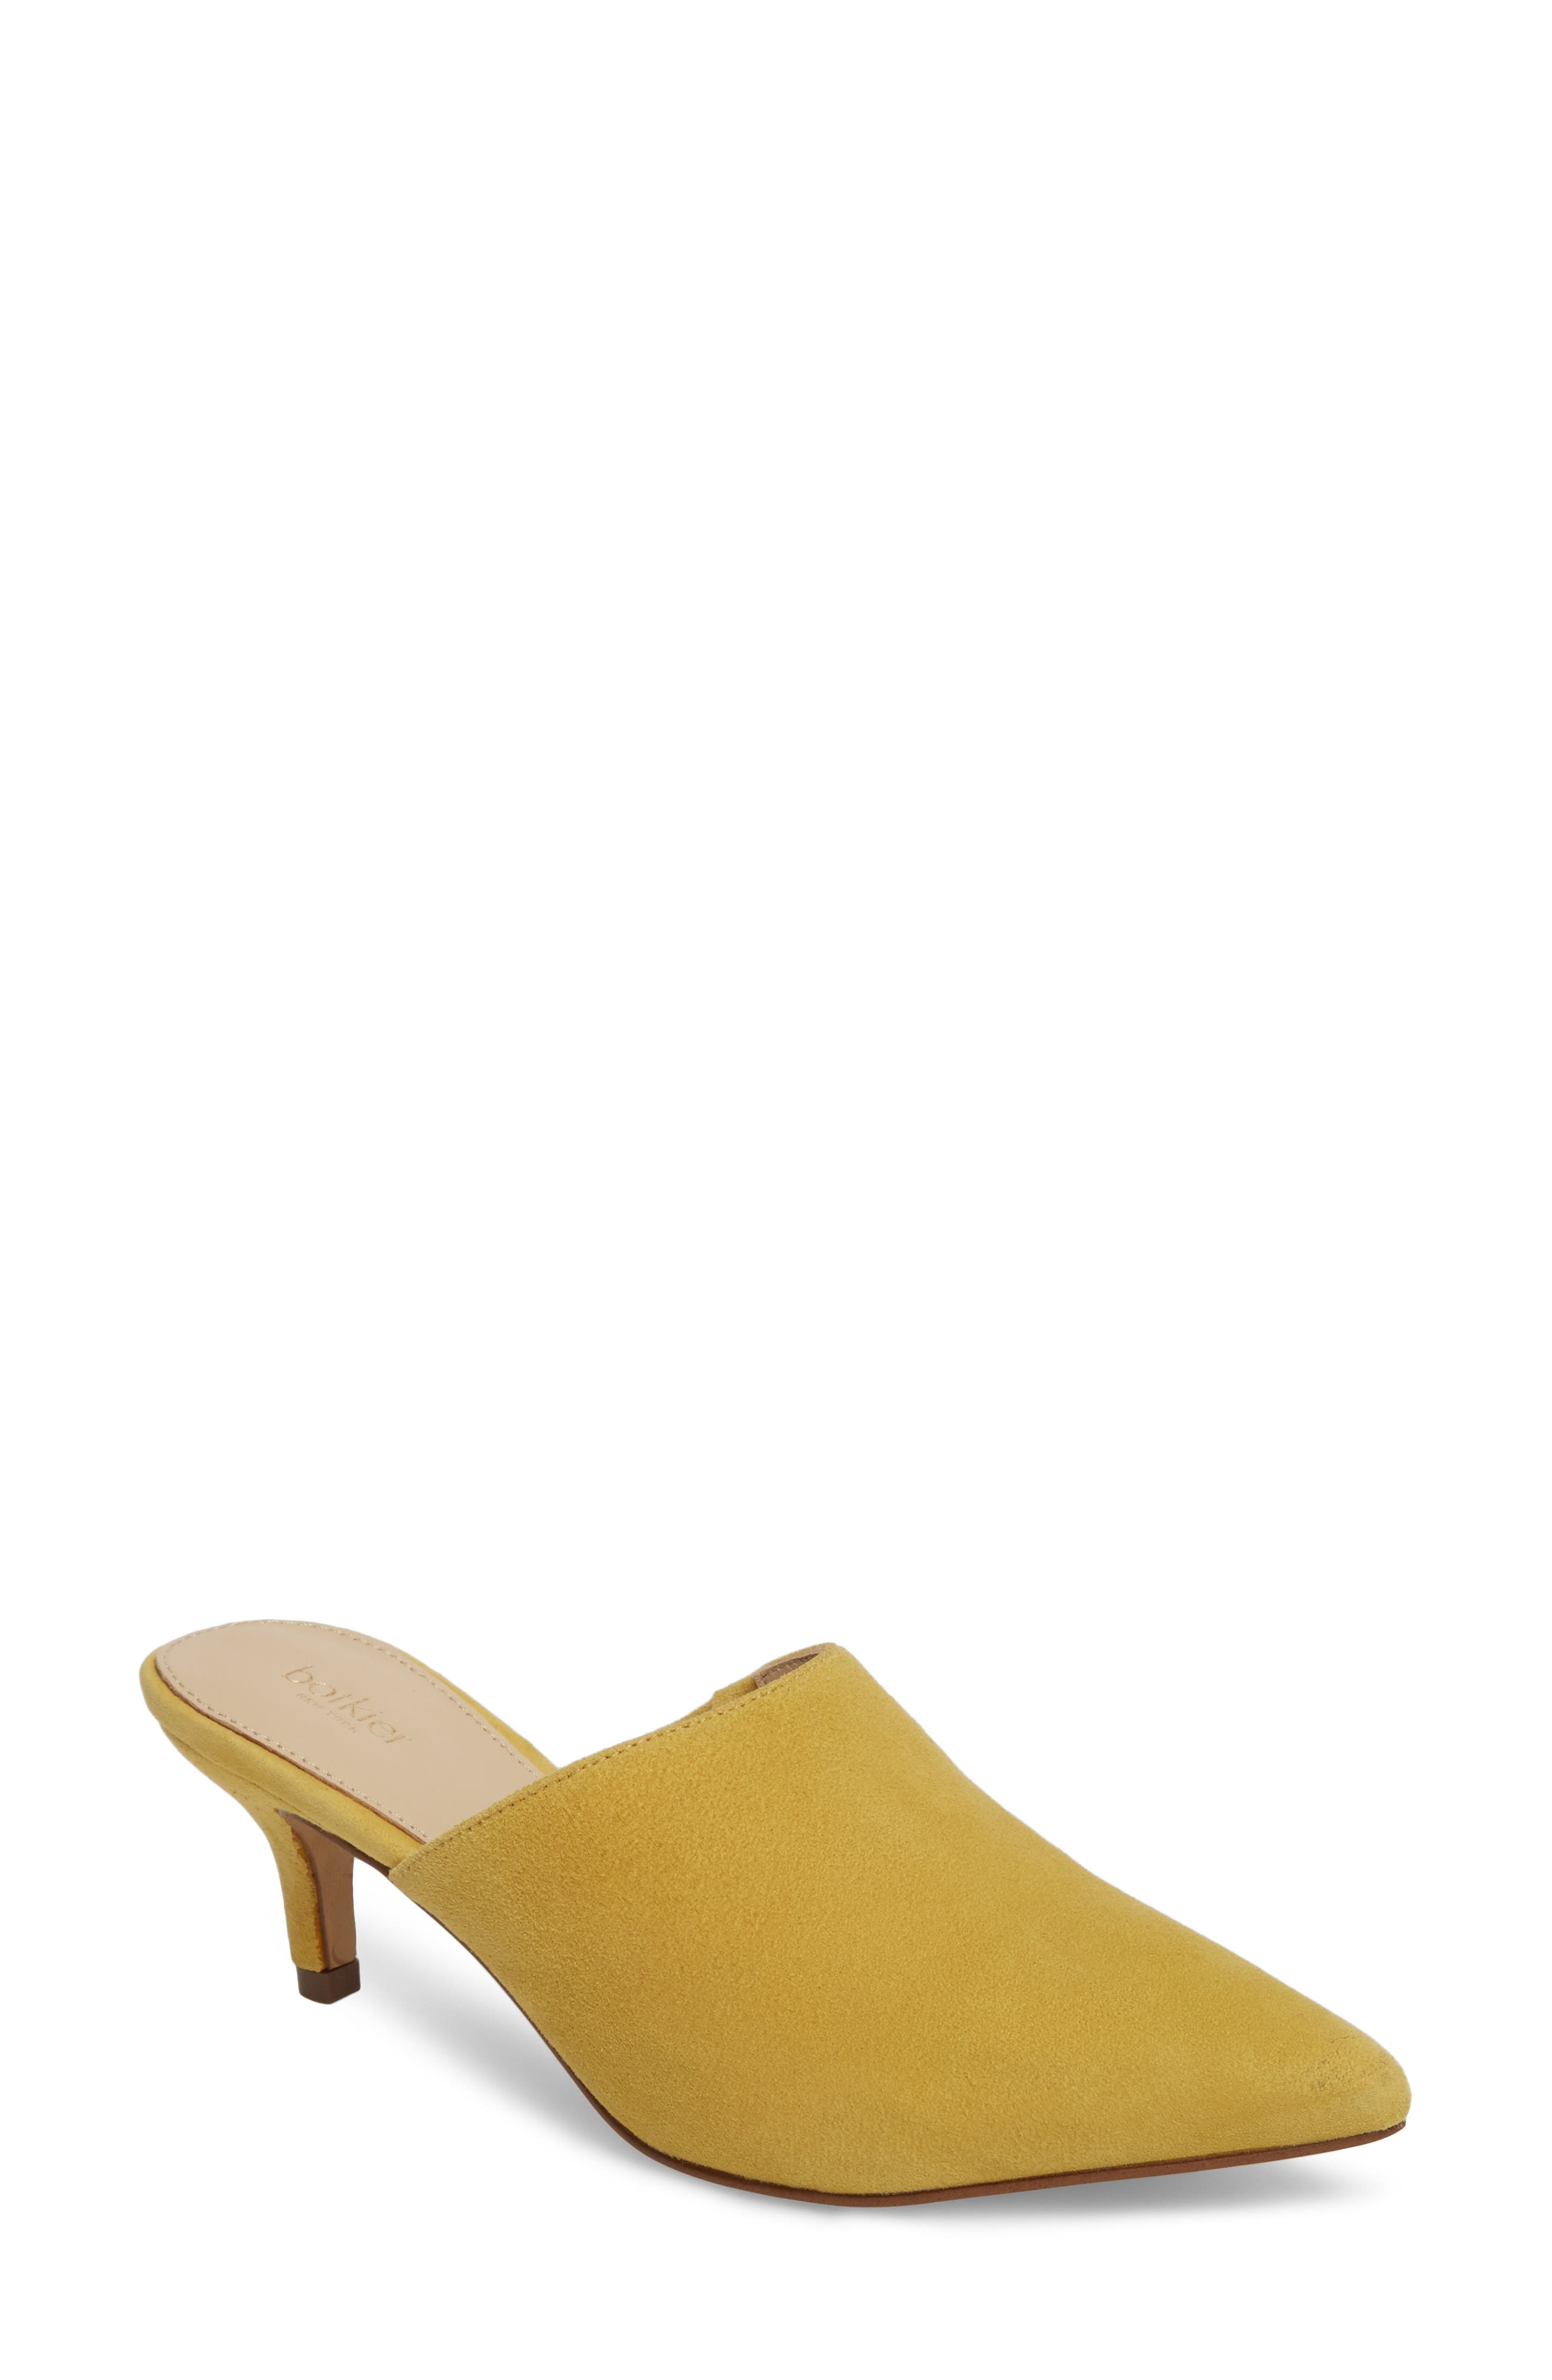 Paley Mule,                             Main thumbnail 1, color,                             Pineapple Suede